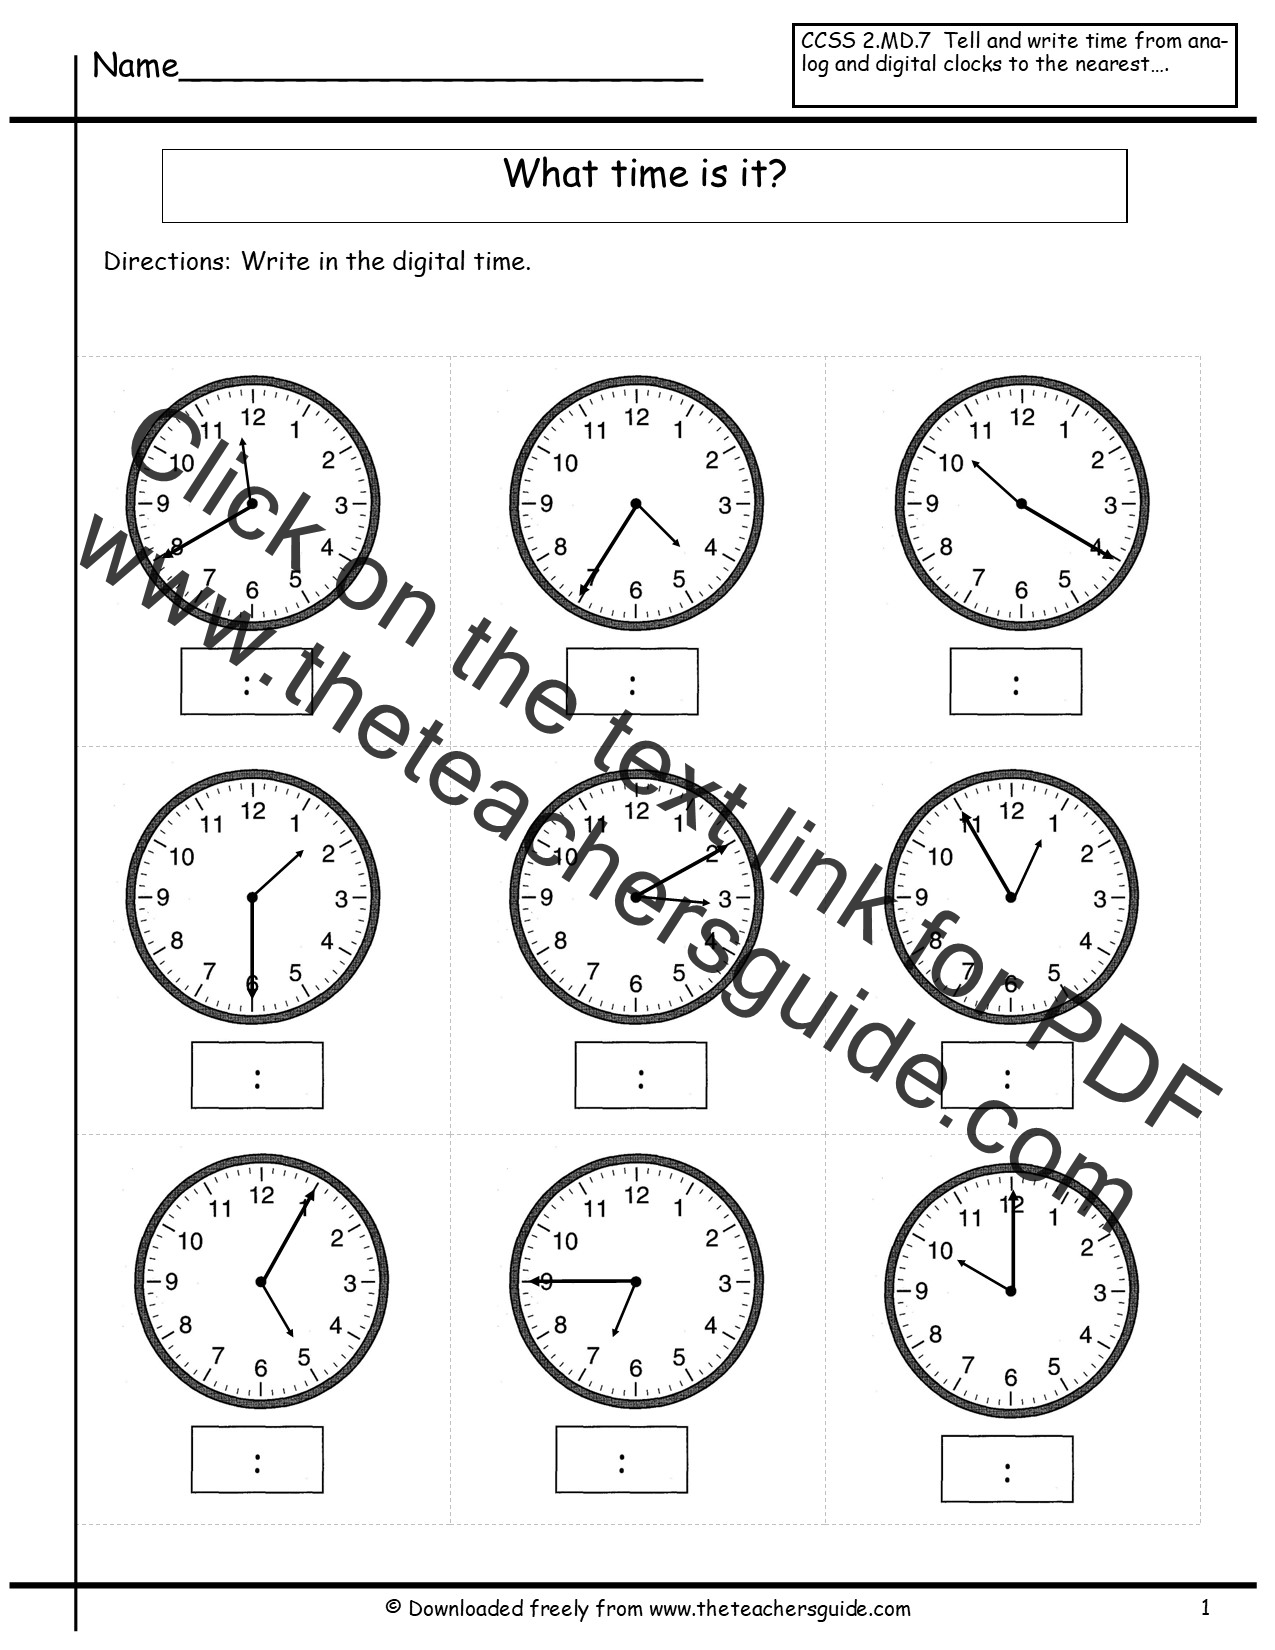 Worksheets Time Telling Worksheets telling time worksheets from the teachers guide to nearest five minutes worksheet